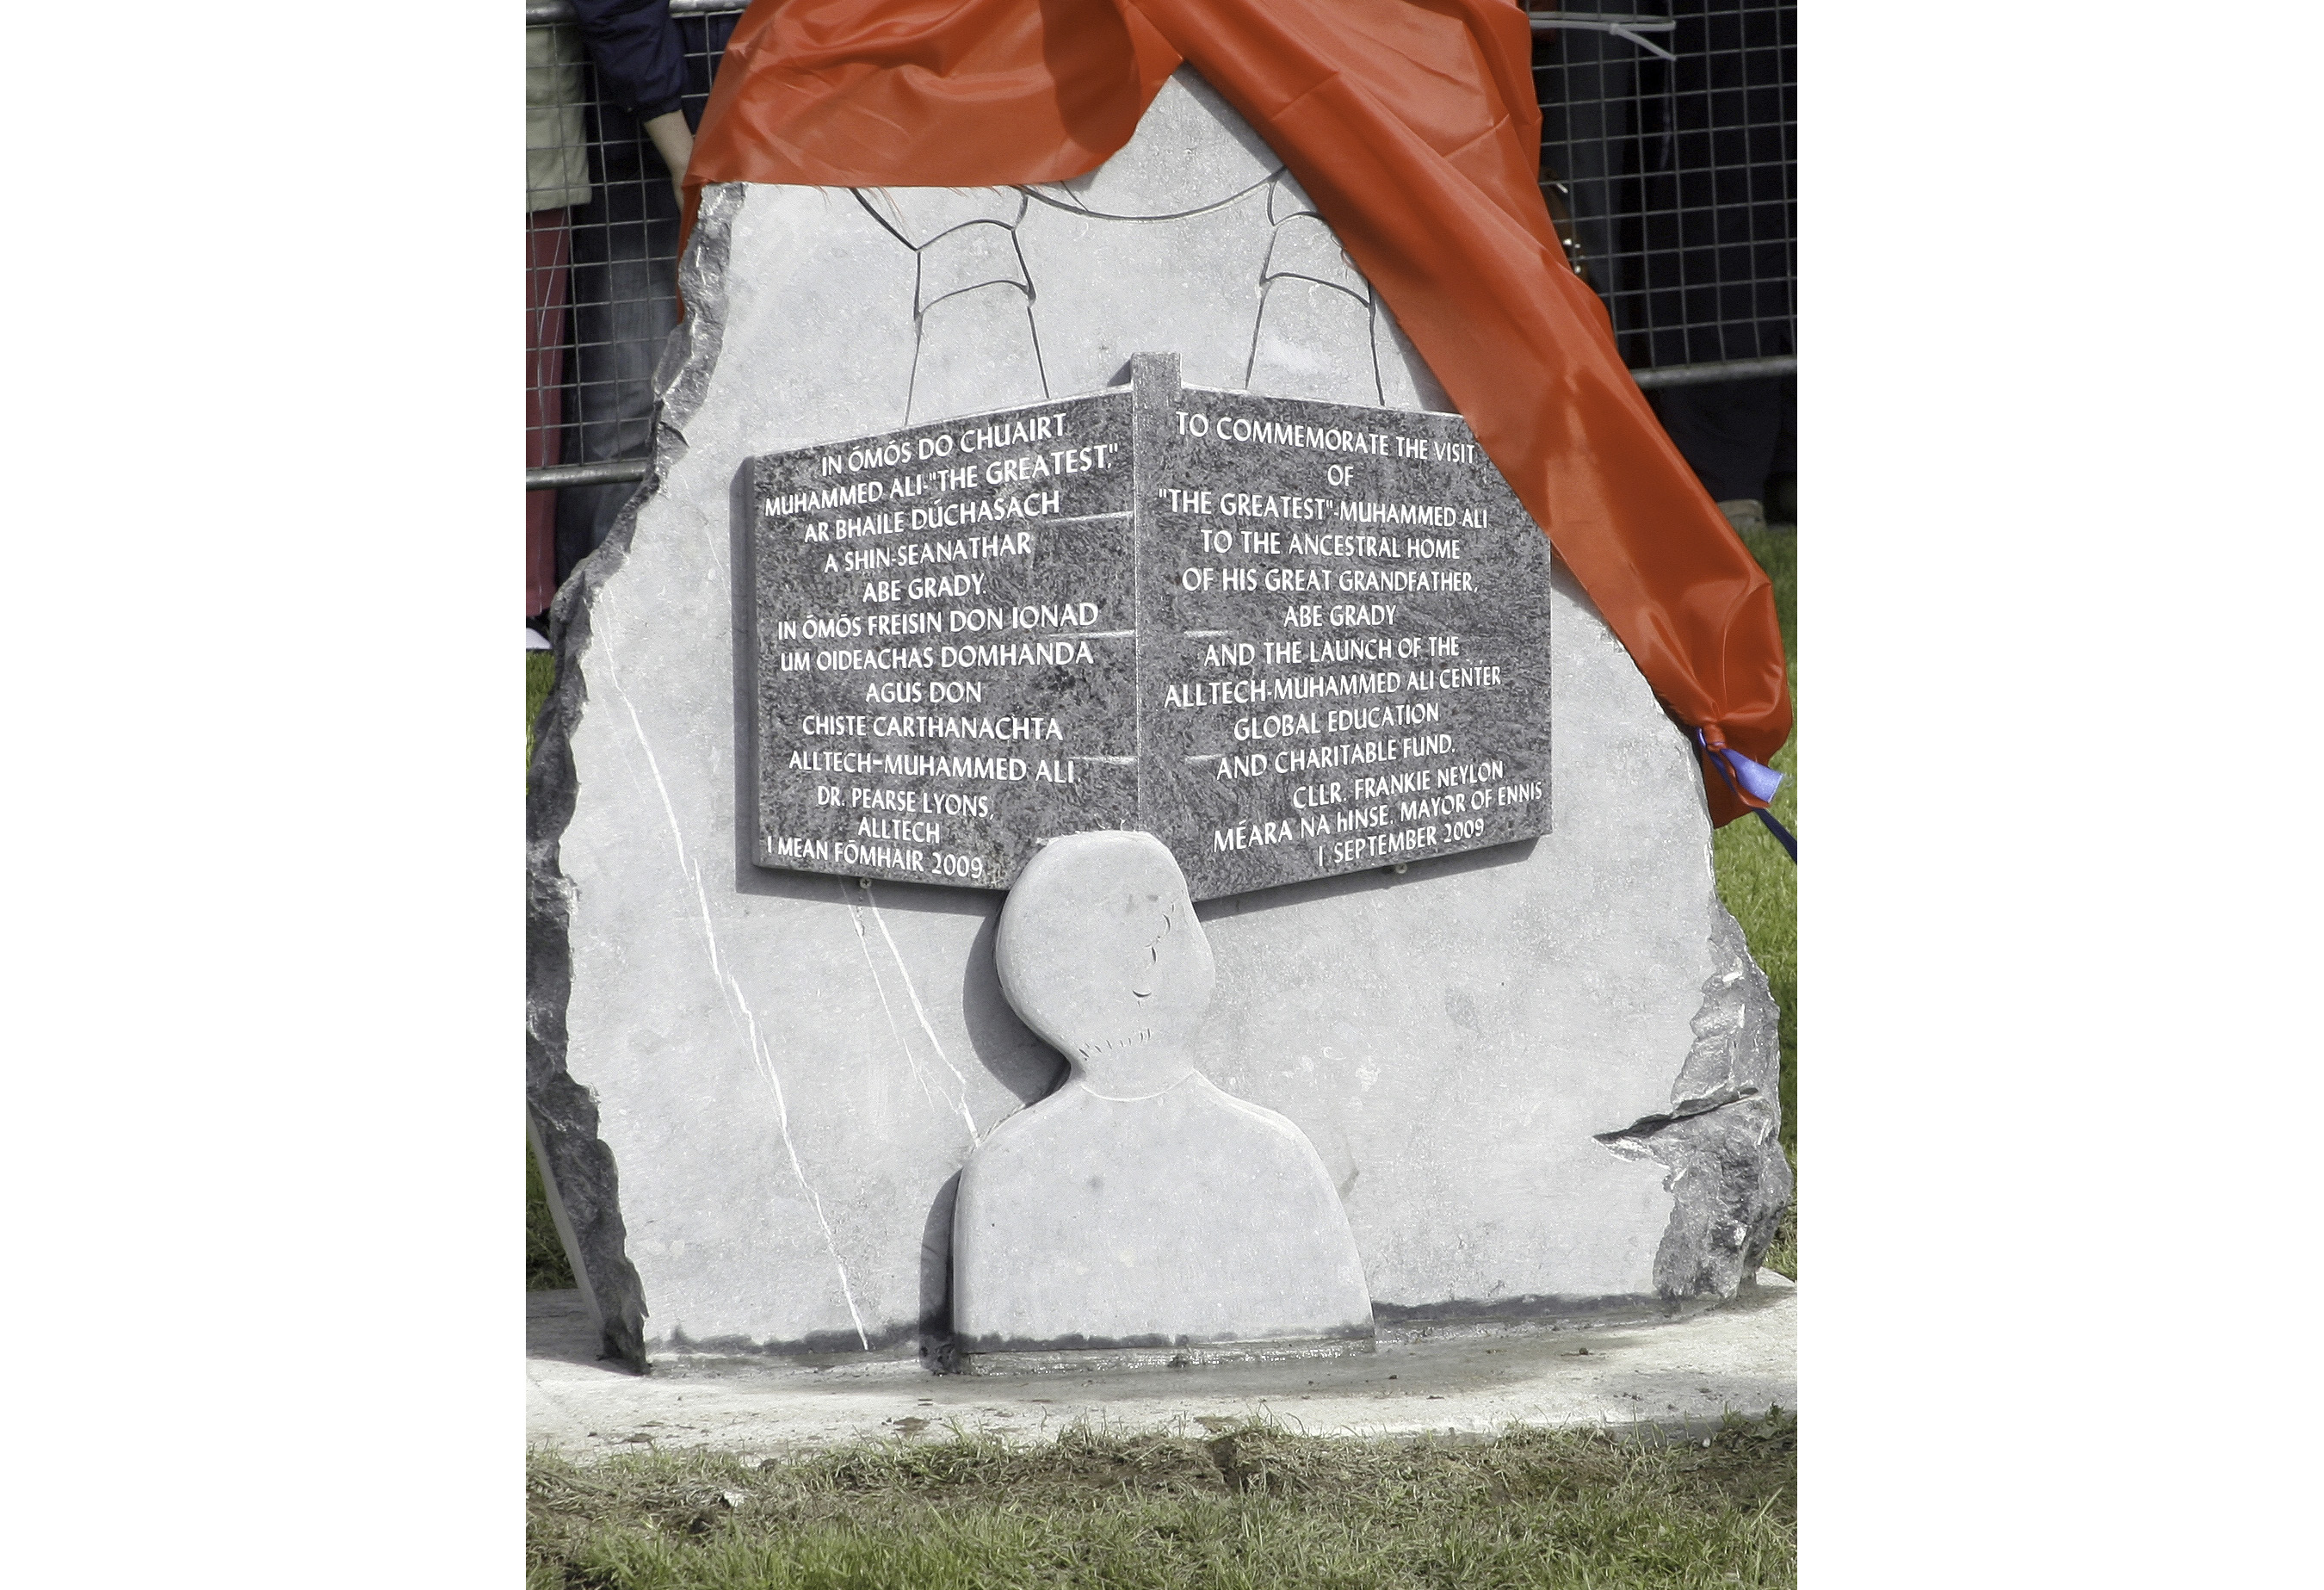 Commemorative statue marking Ali's 2006 visit to Ennis. Photo courtesy of the author.